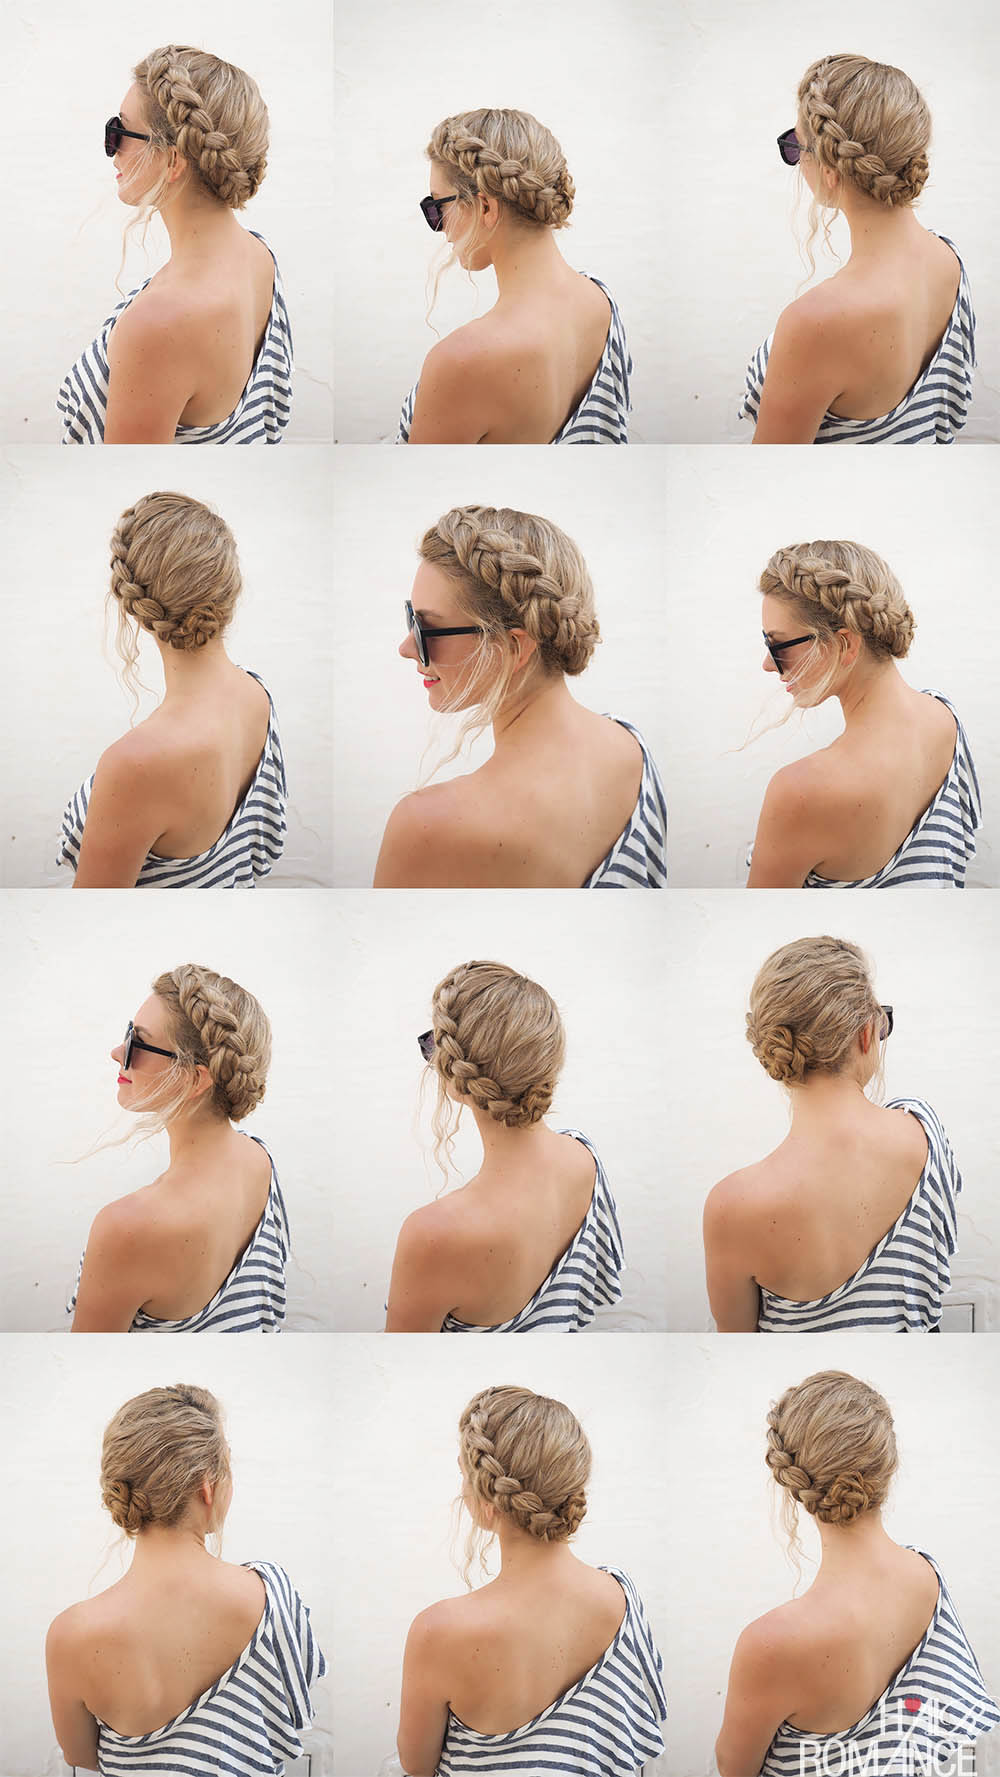 10 tips for better blog photos - 1 take lots of shots - Hair Romance